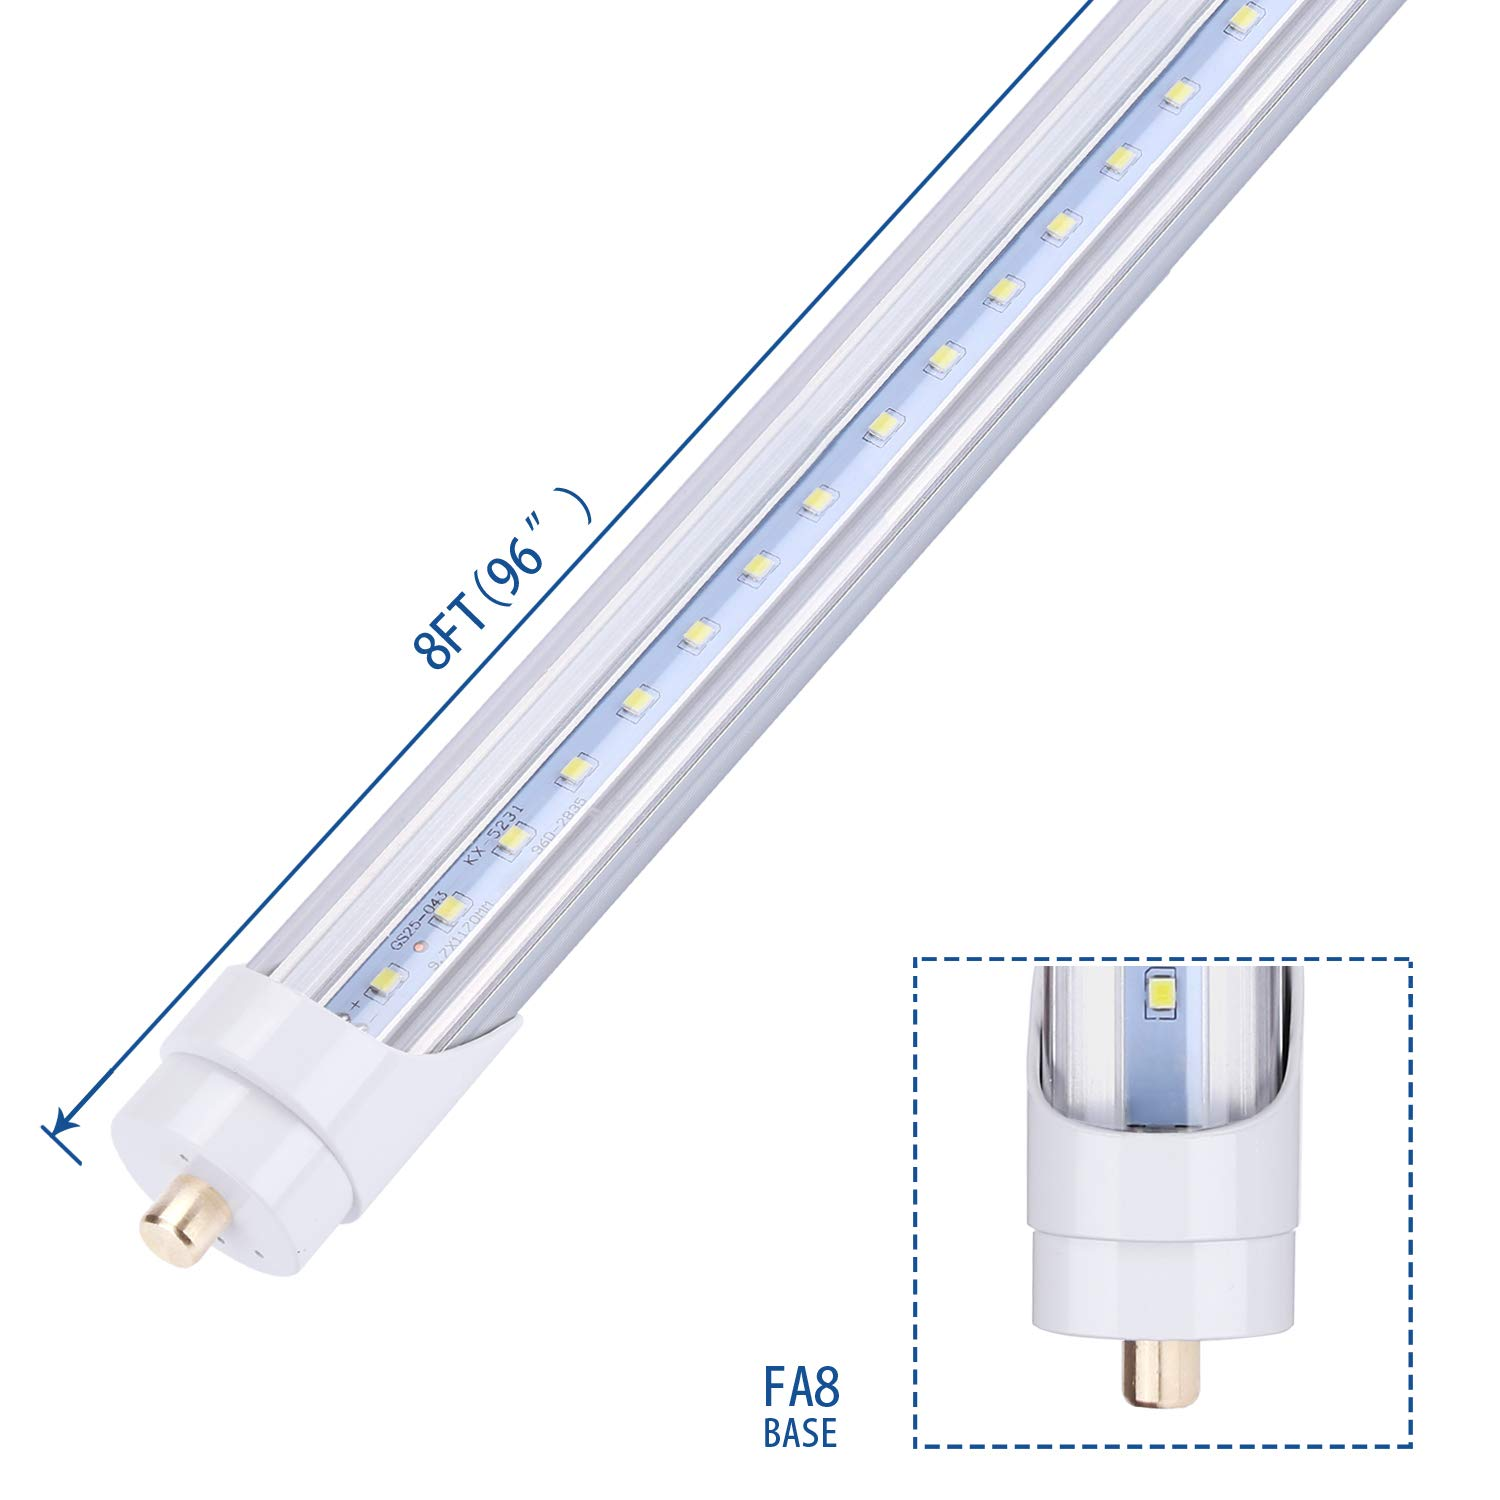 JOMITOP LED Tube Light 8FT,T8 Light Bulb 45W,Single Pin FA8 Base Led Shop Lights 100W Fluorescent Lamp Replacement Dual-Ended Power, Cold White 6000K, 5400LM, Clear Cover, AC 85-277V 12 Pack by Jomitop (Image #3)